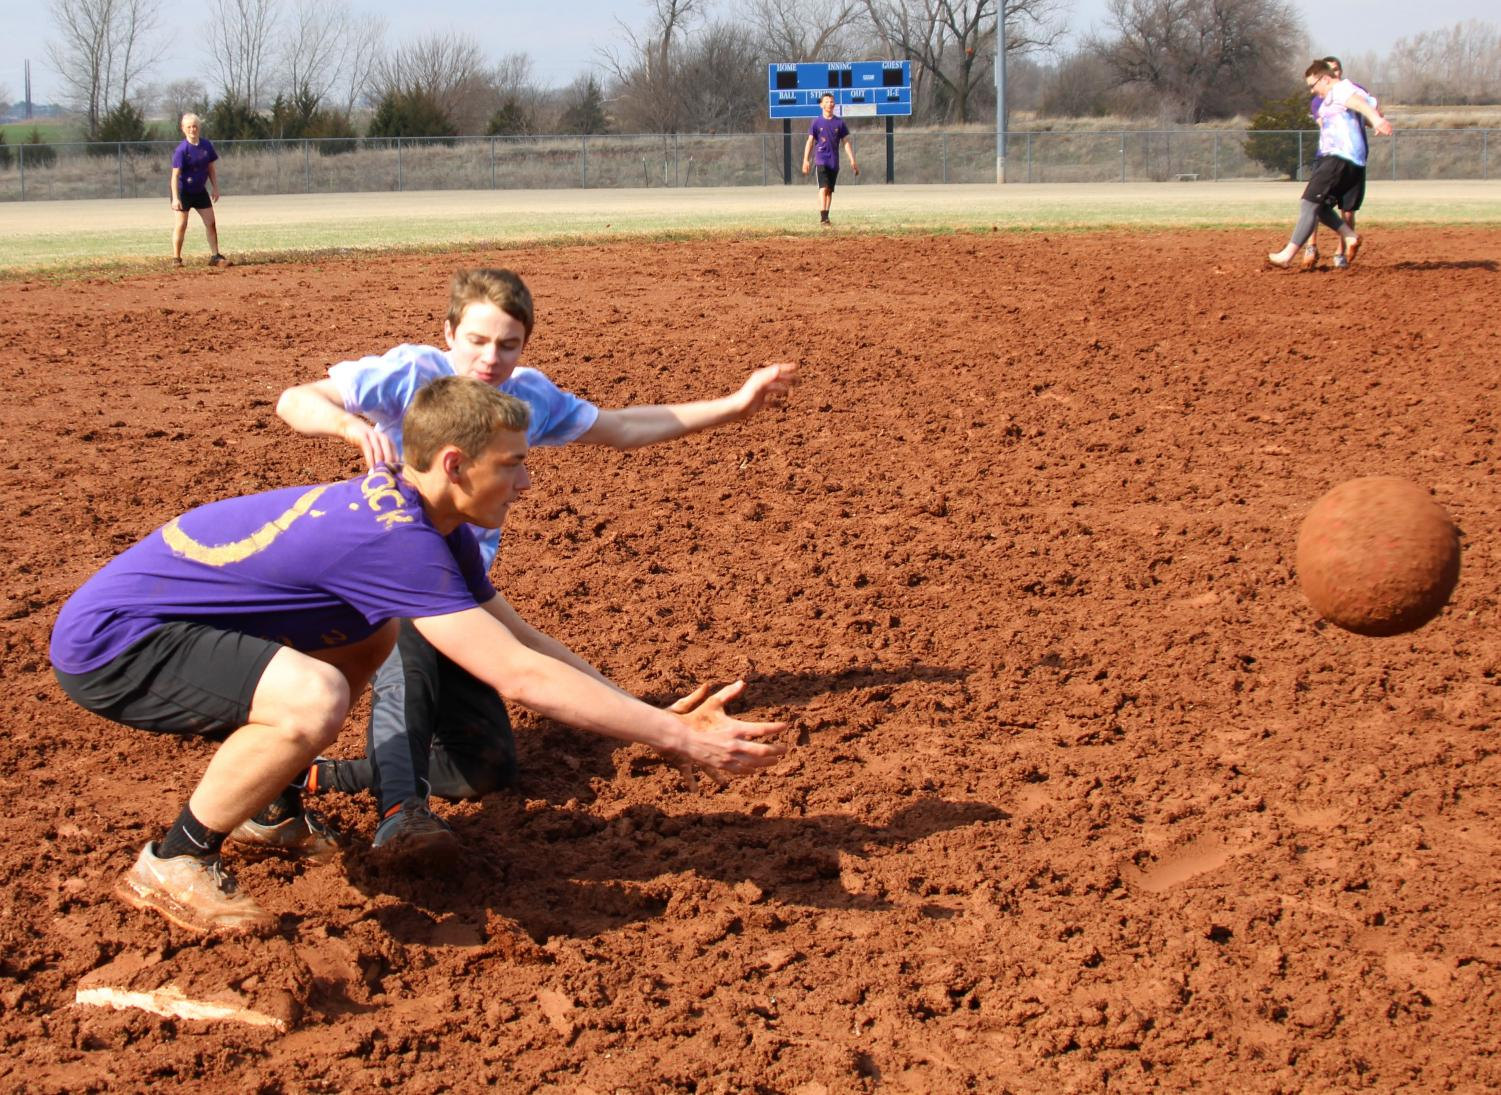 During kickball on March 23, junior Carson Clum slides into third base, making it safe, while junior Jack Ebenkamp waits for the ball. Carson's team was called Life's a Pitch, and they took fifth overall. Photo by Lexi Fisher.